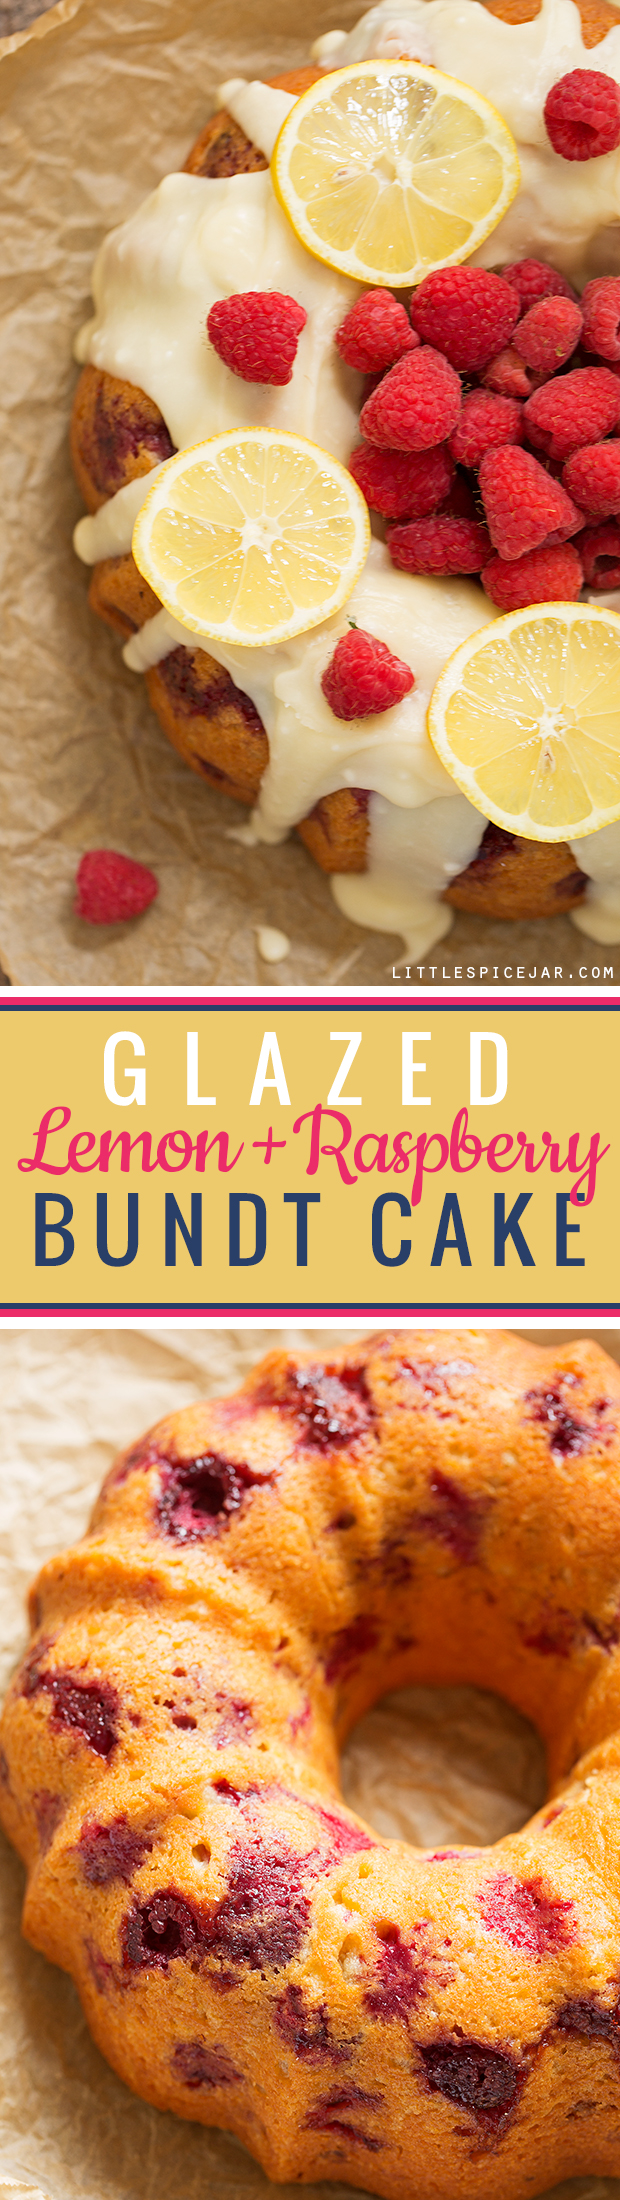 Glazed Lemon Raspberry Bundt Cake - A simple, tender bundt cake with pops of lemon zest and juicy raspberries! #bundtcake #lemonbundtcake #cake #raspberries | Littlespicejar.com